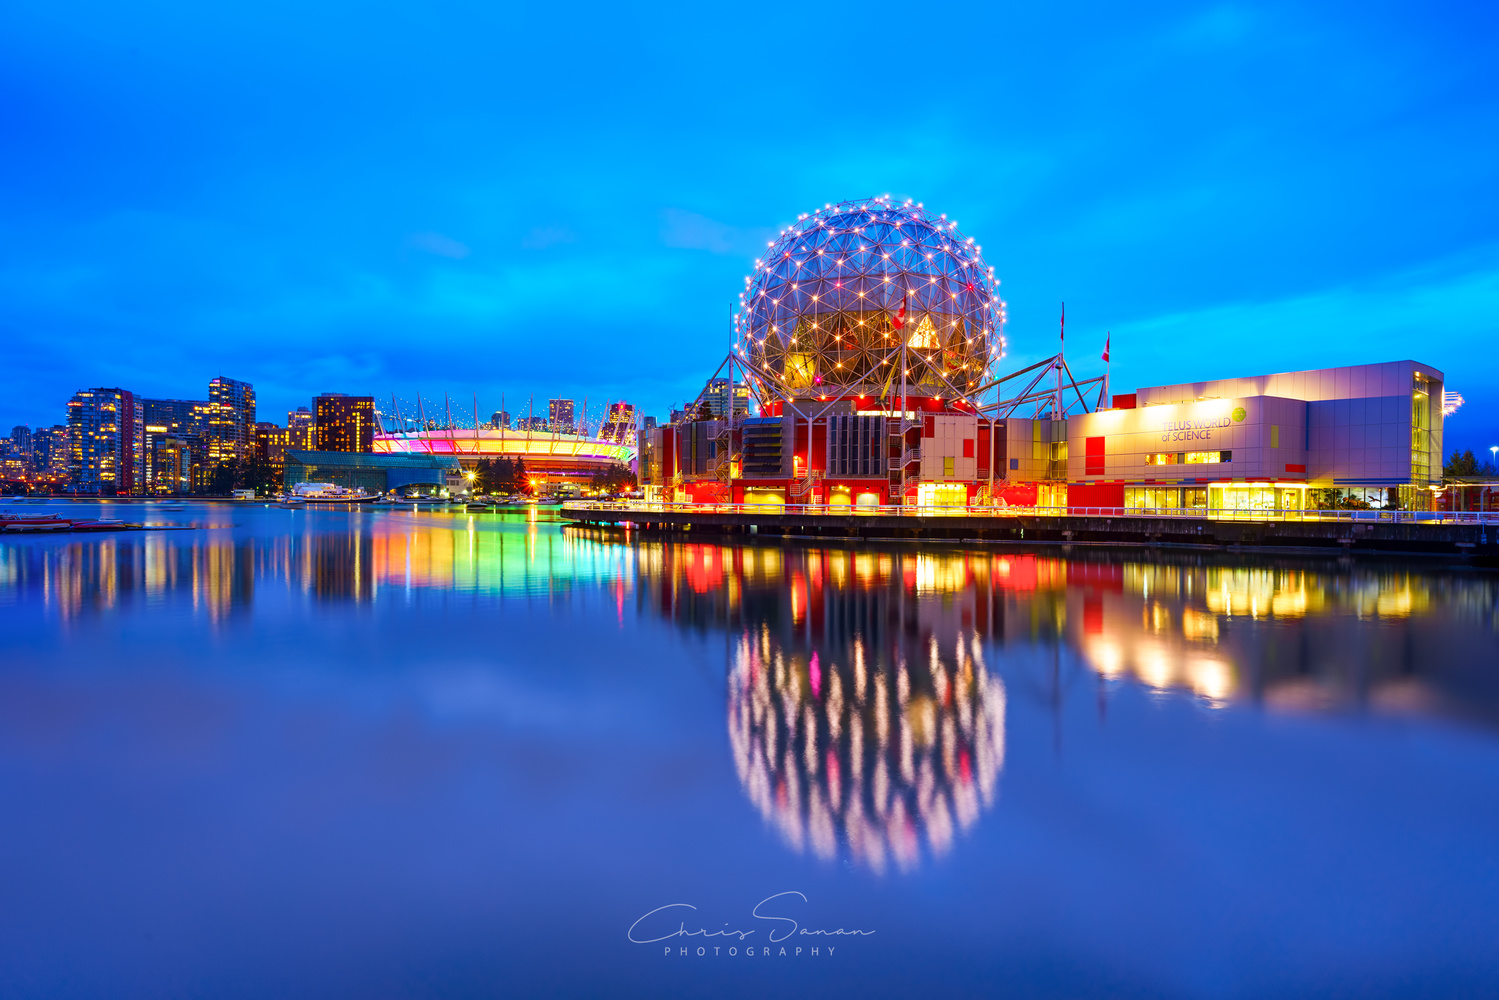 TELUS WORLD OF SCIENCE by Chris Sanan